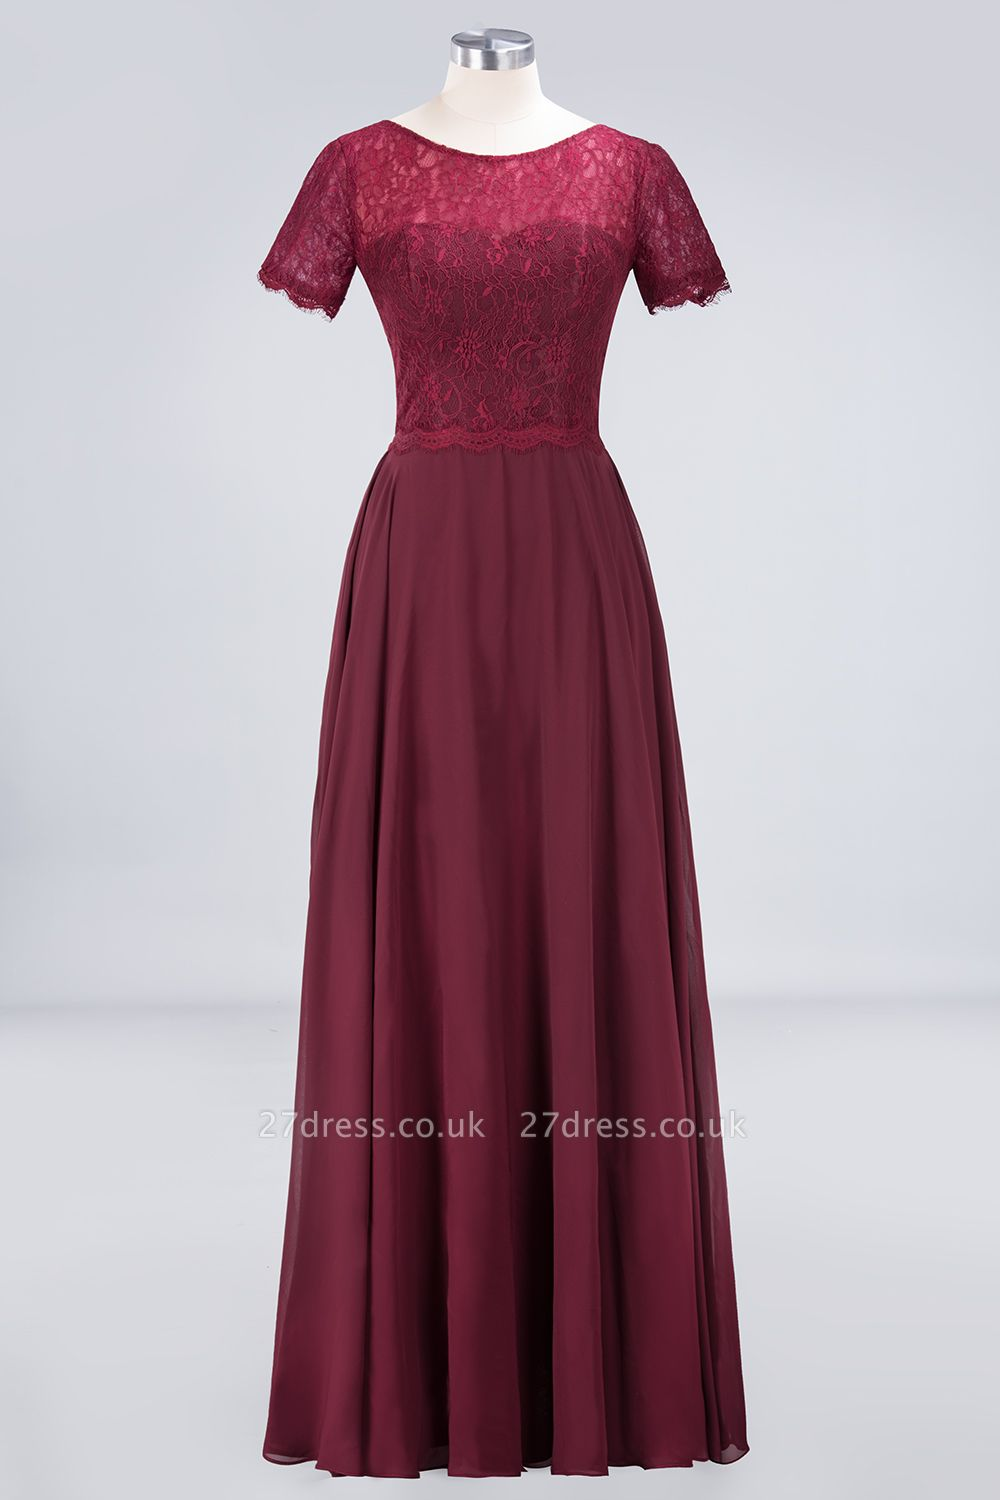 Sexy A-line Flowy Lace Round-Neck Short-Sleeves Floor-Length Bridesmaid Dress UK UK